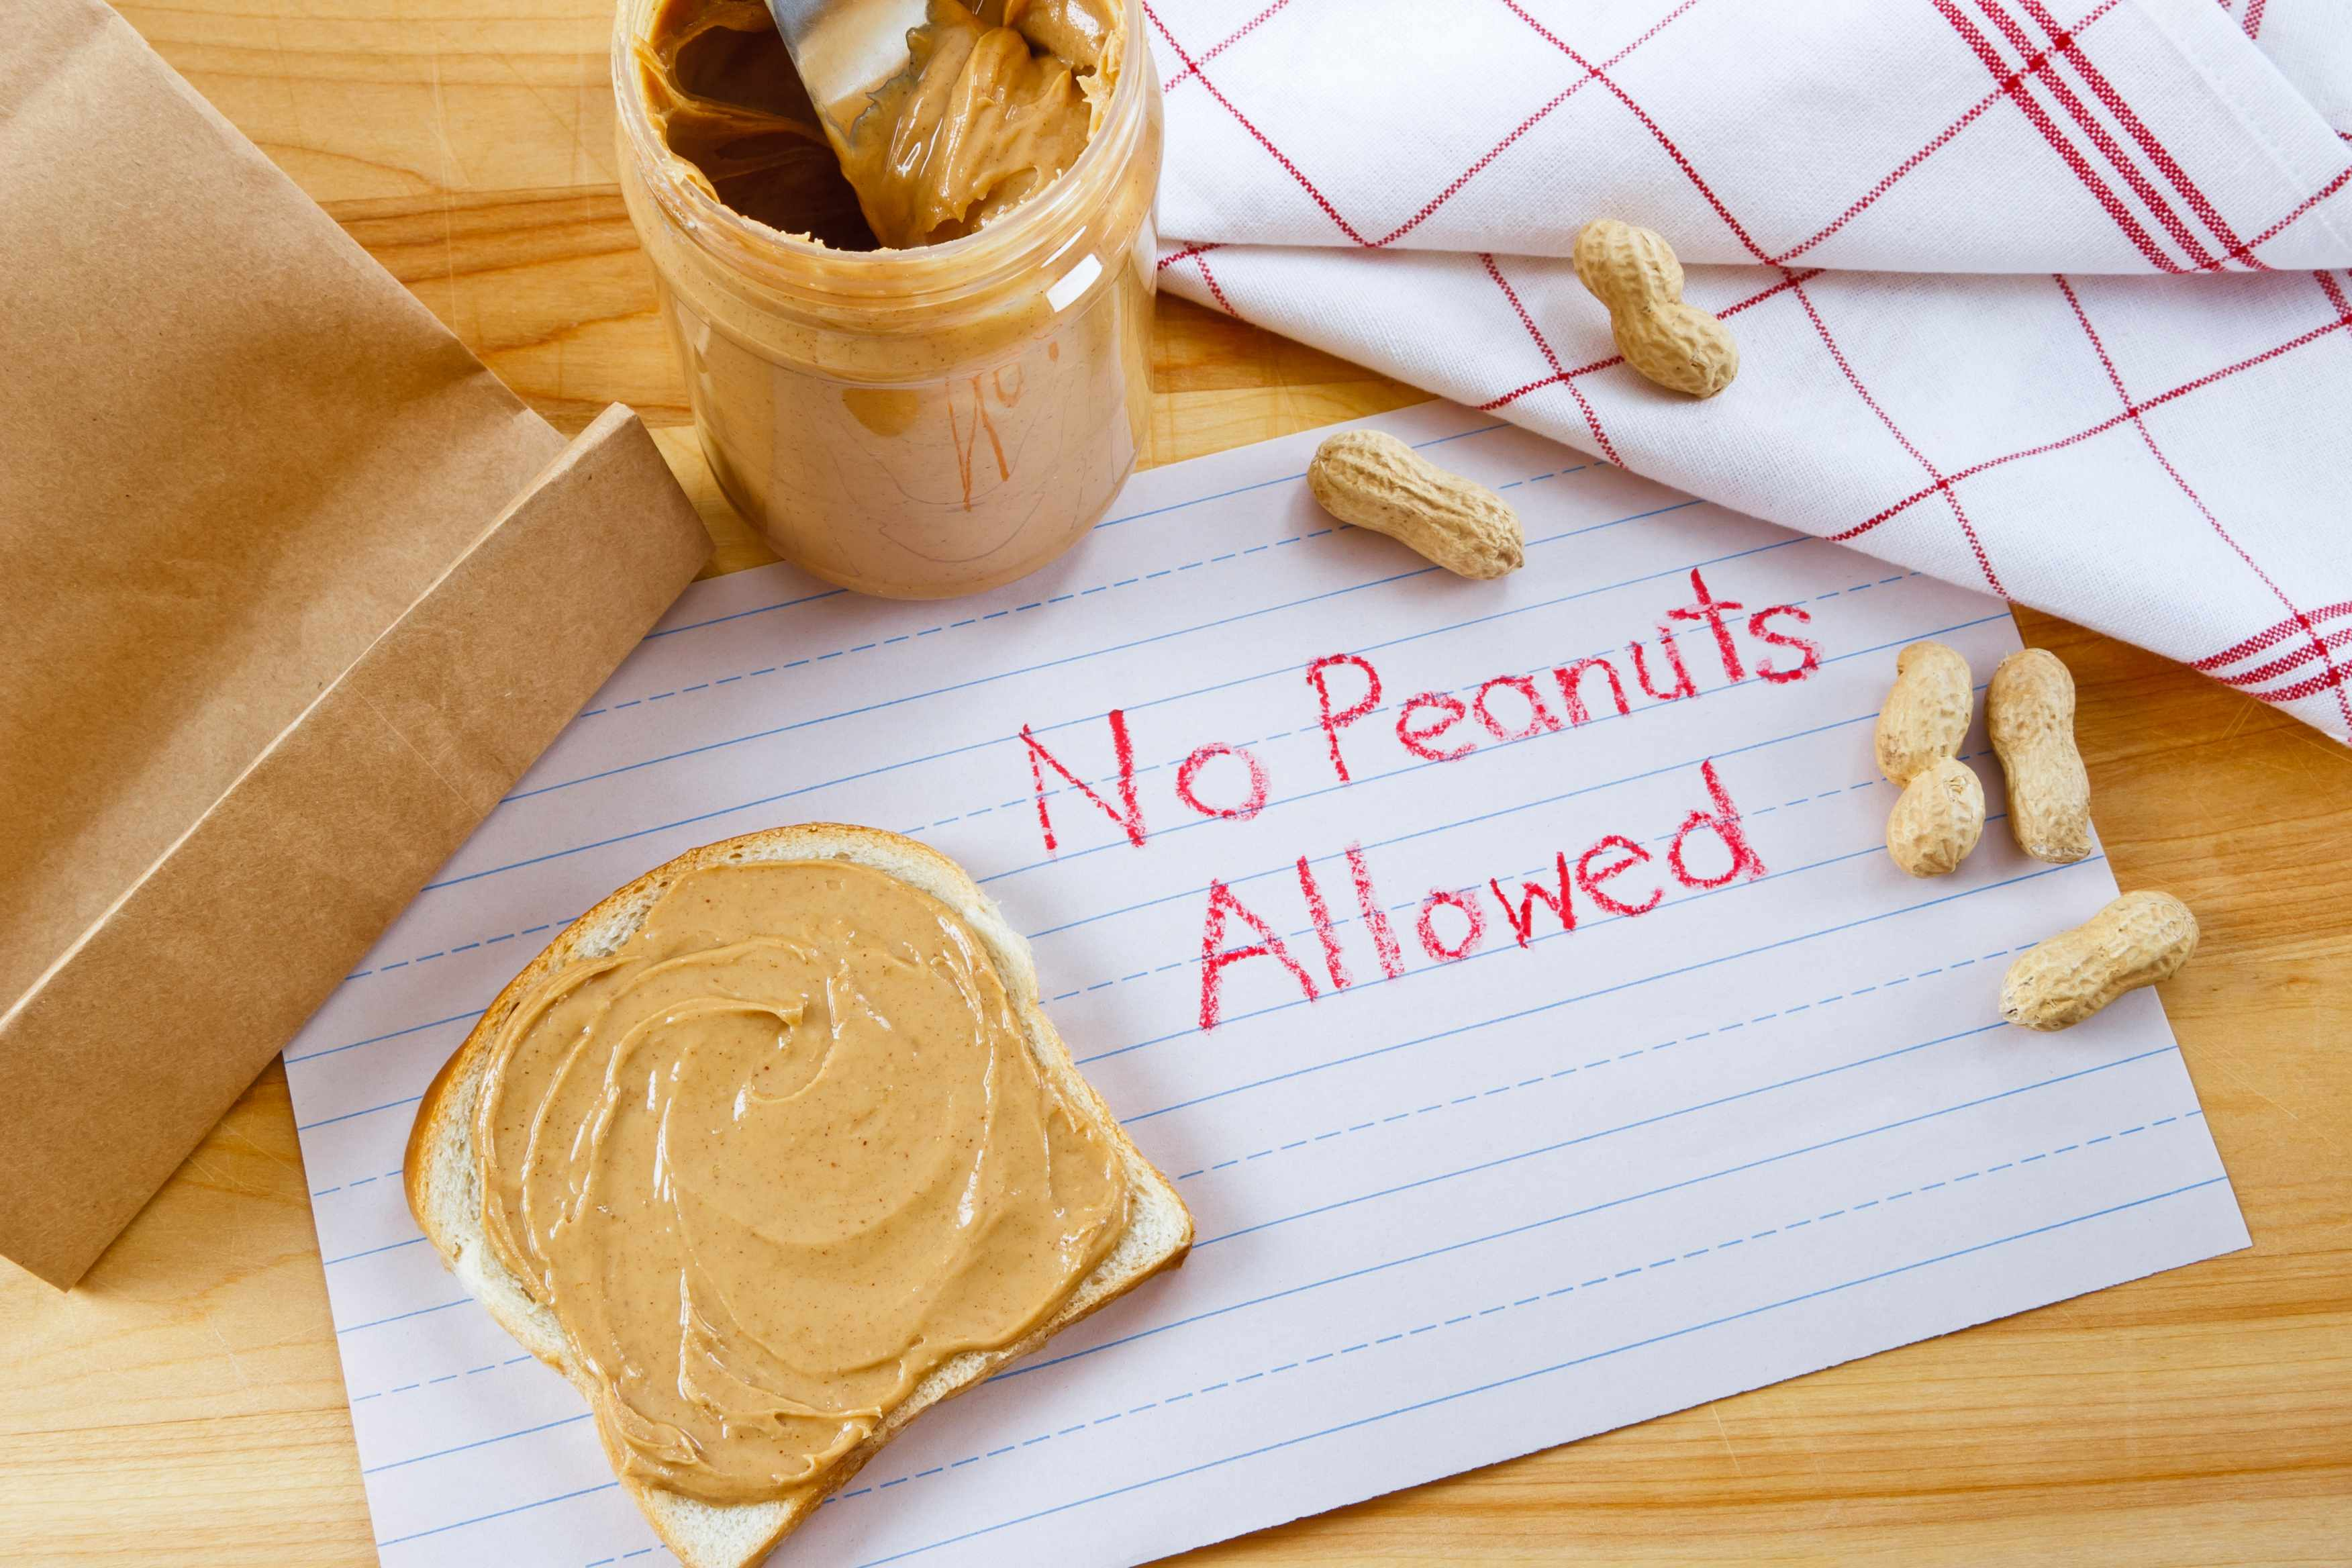 peanuts on a table, a jar of peanut butter and peanut butter spread on a slice of bread